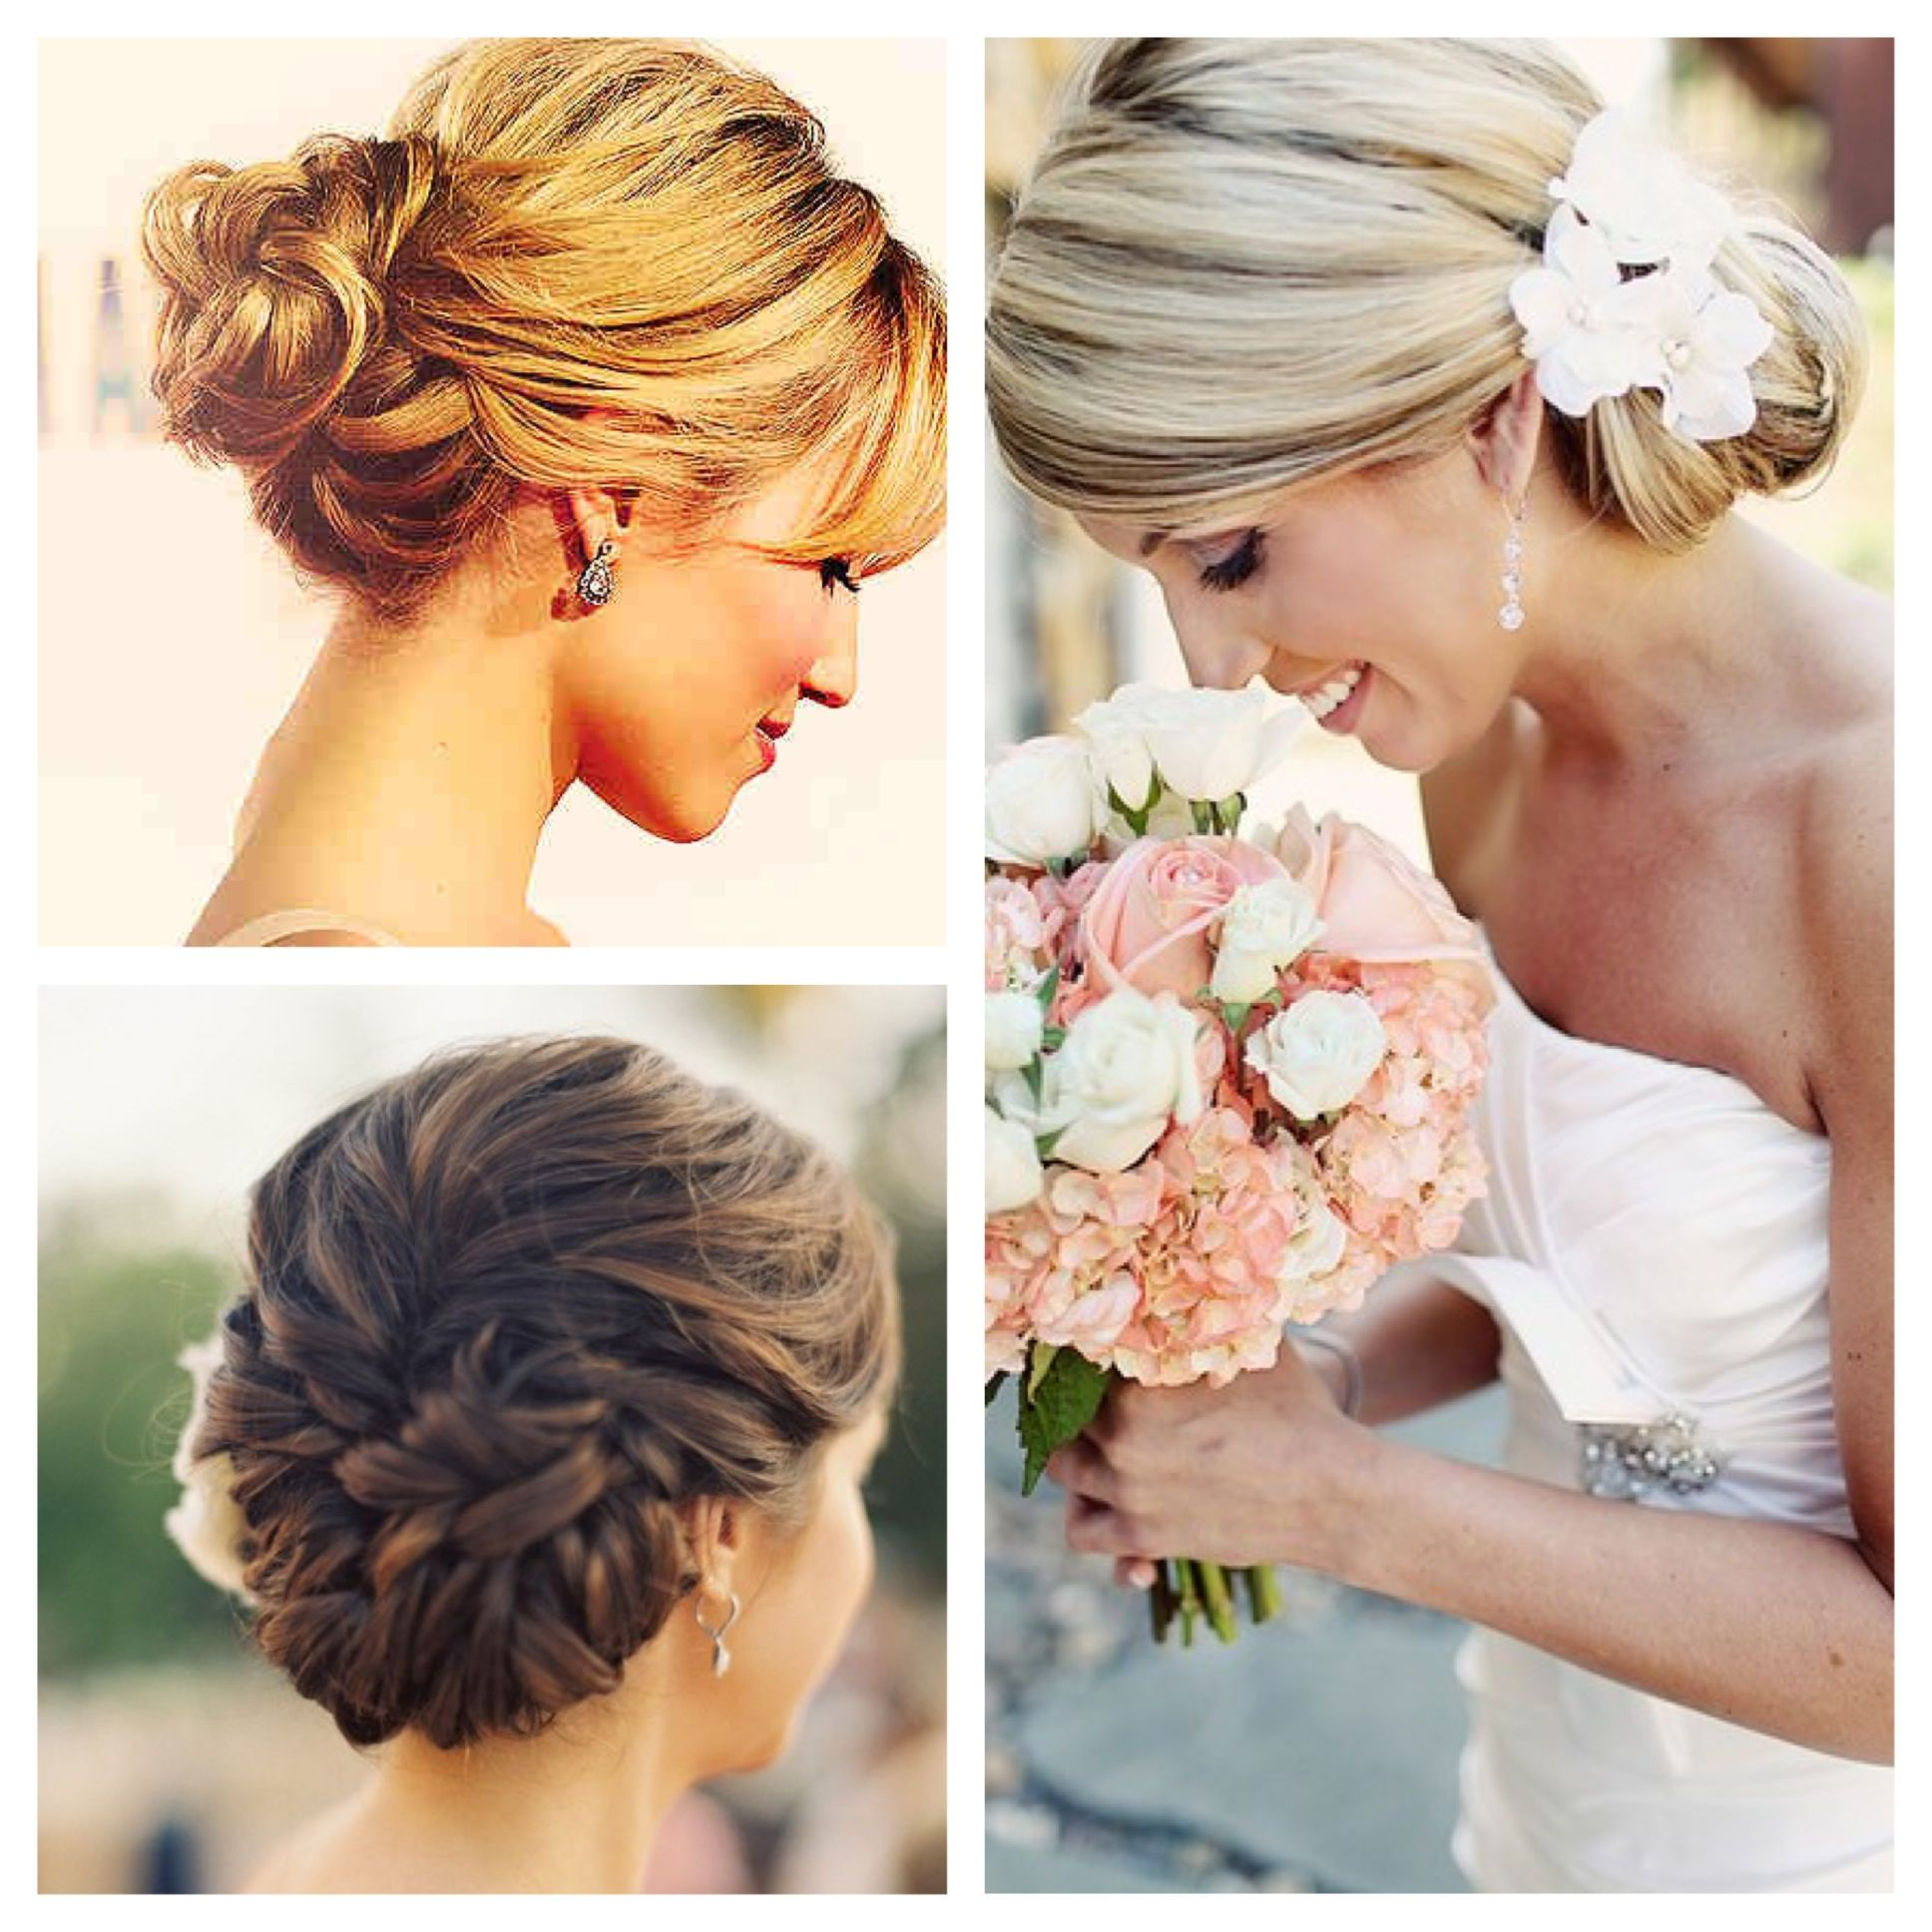 bridesmaids and matron of honor hairstyles. | the big day ideas